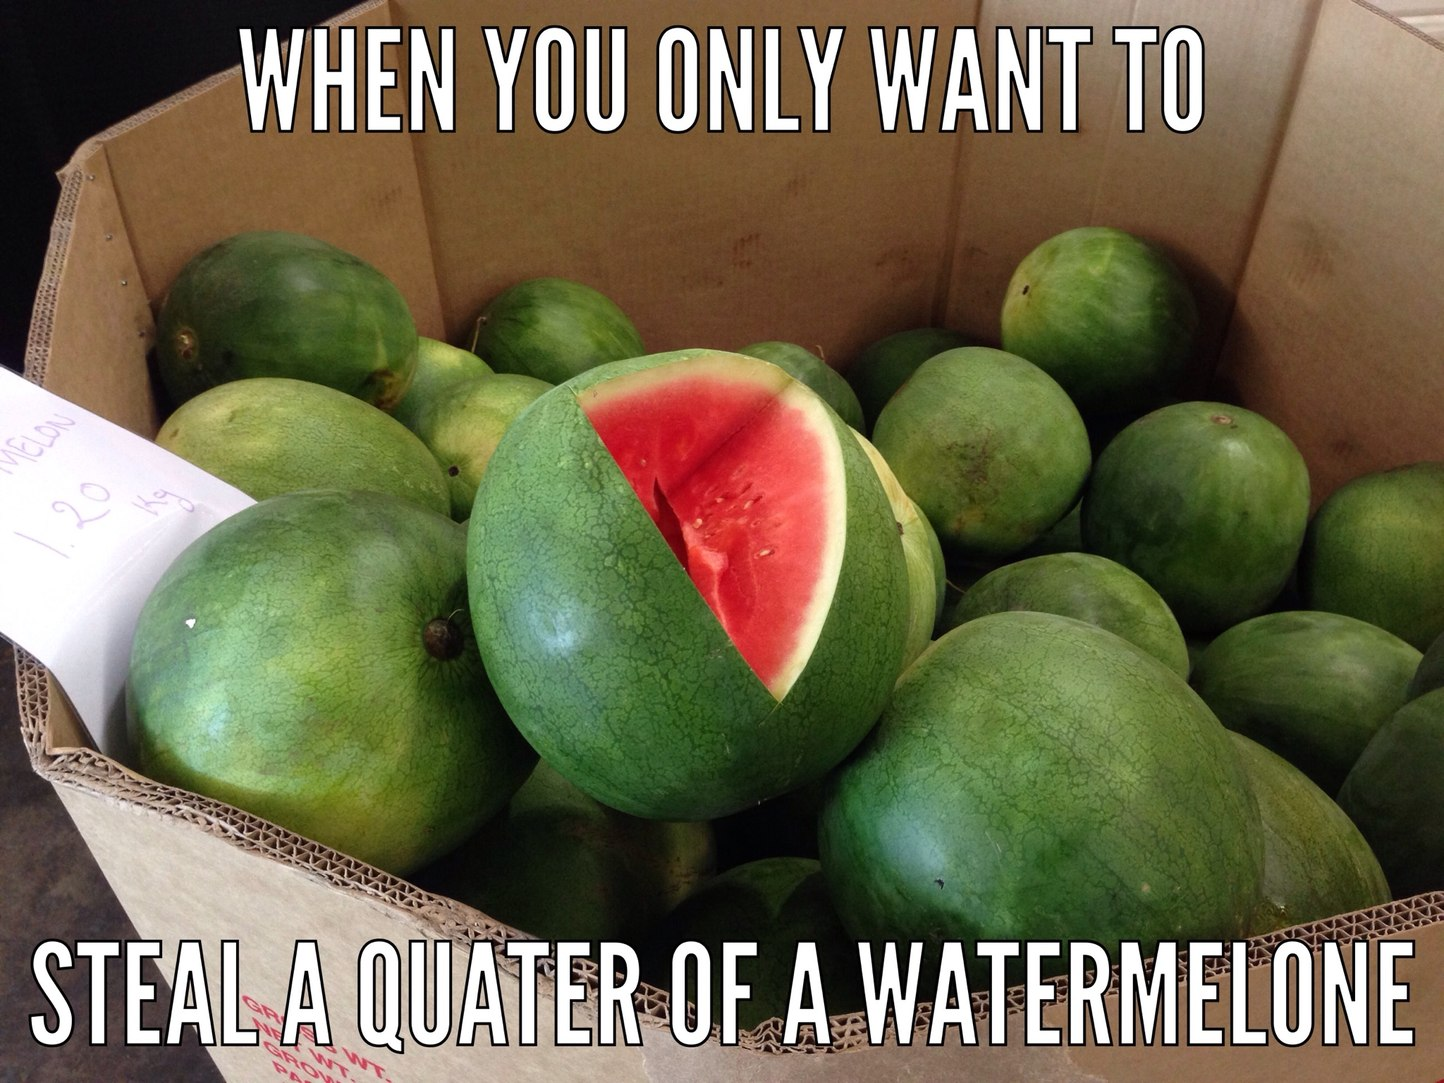 how to steal watermelon - meme